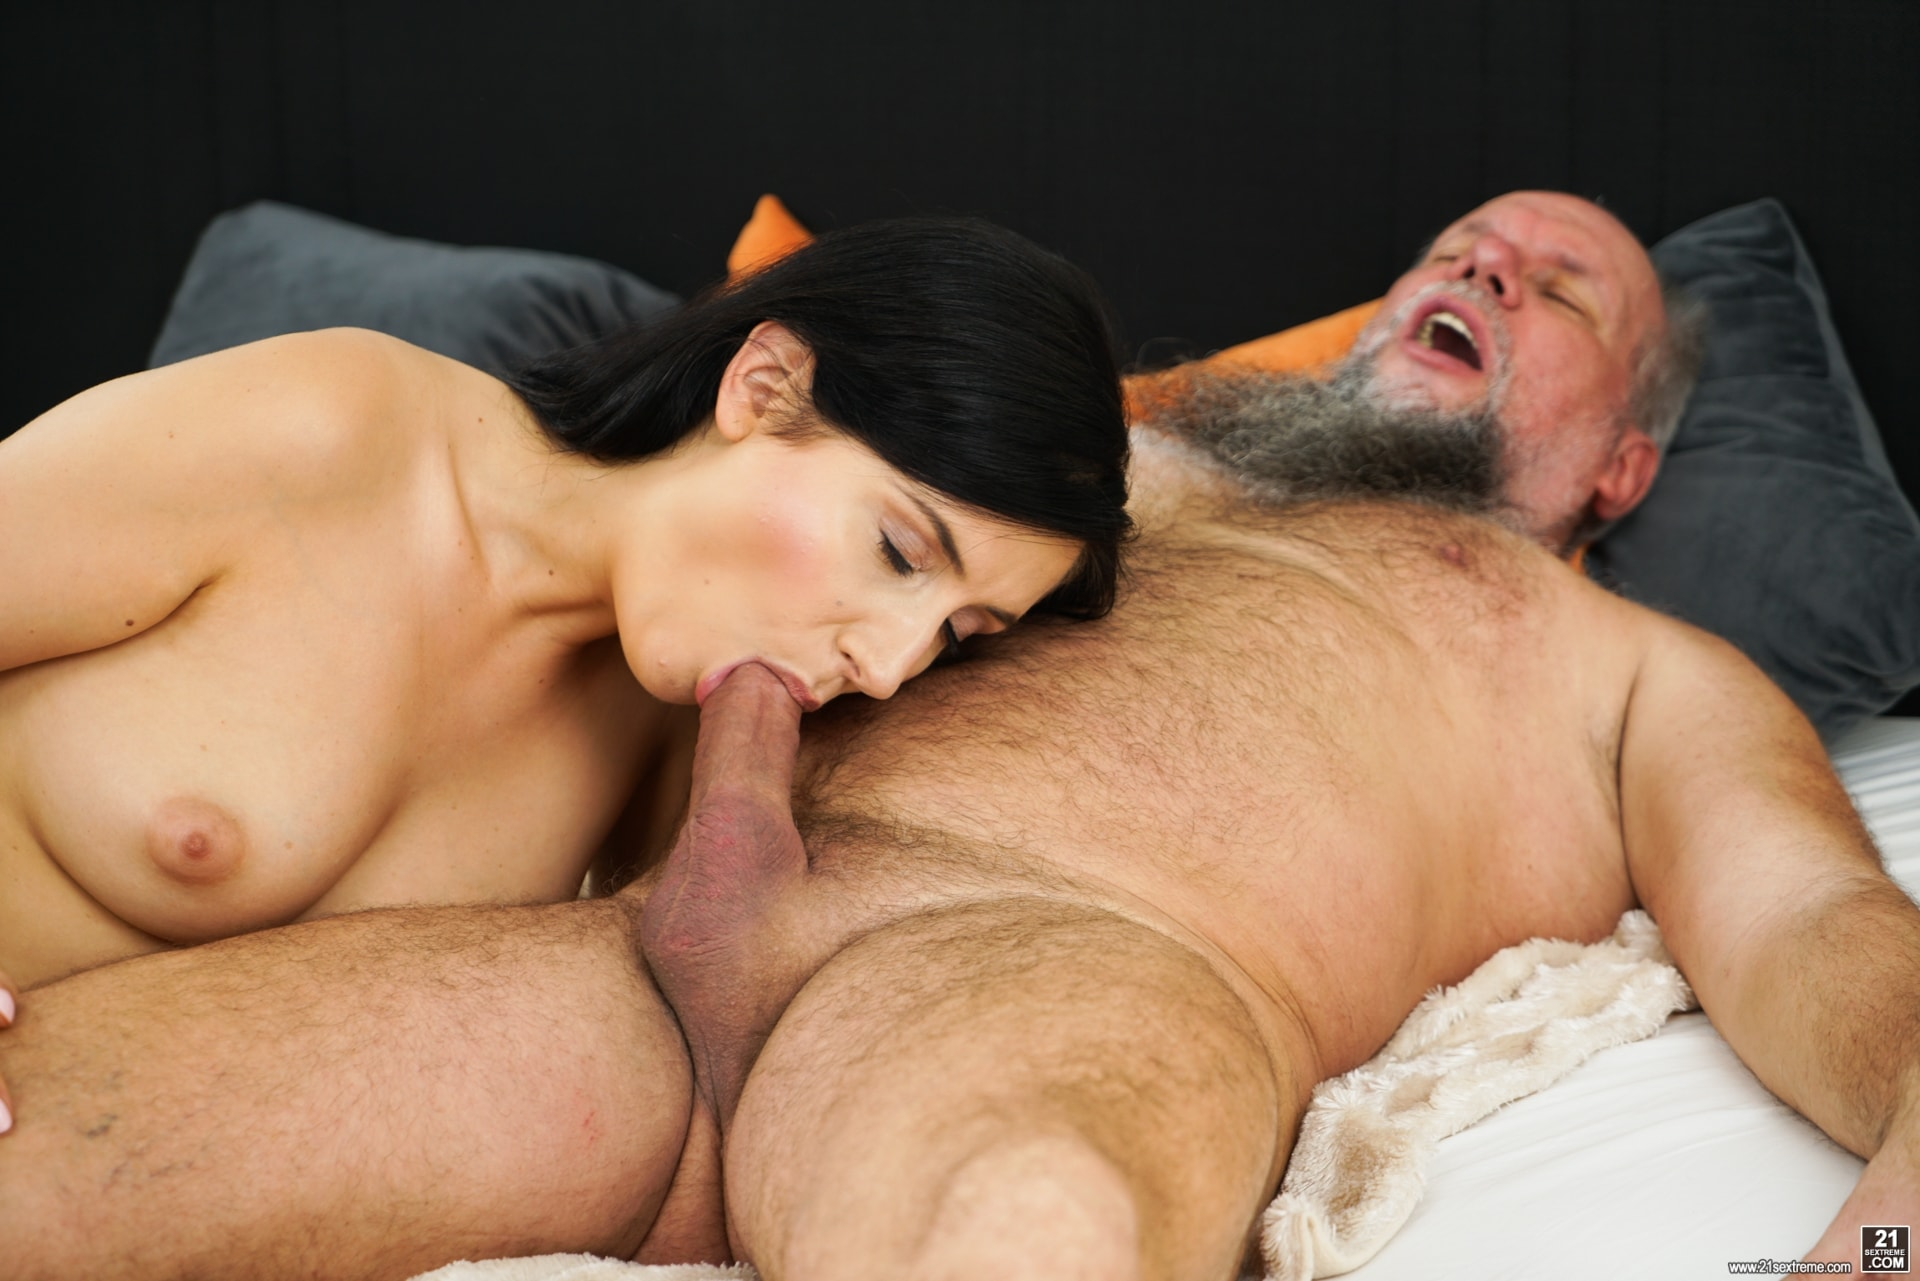 21Sextury 'Don't Let It End' starring Melody Mae (Photo 104)